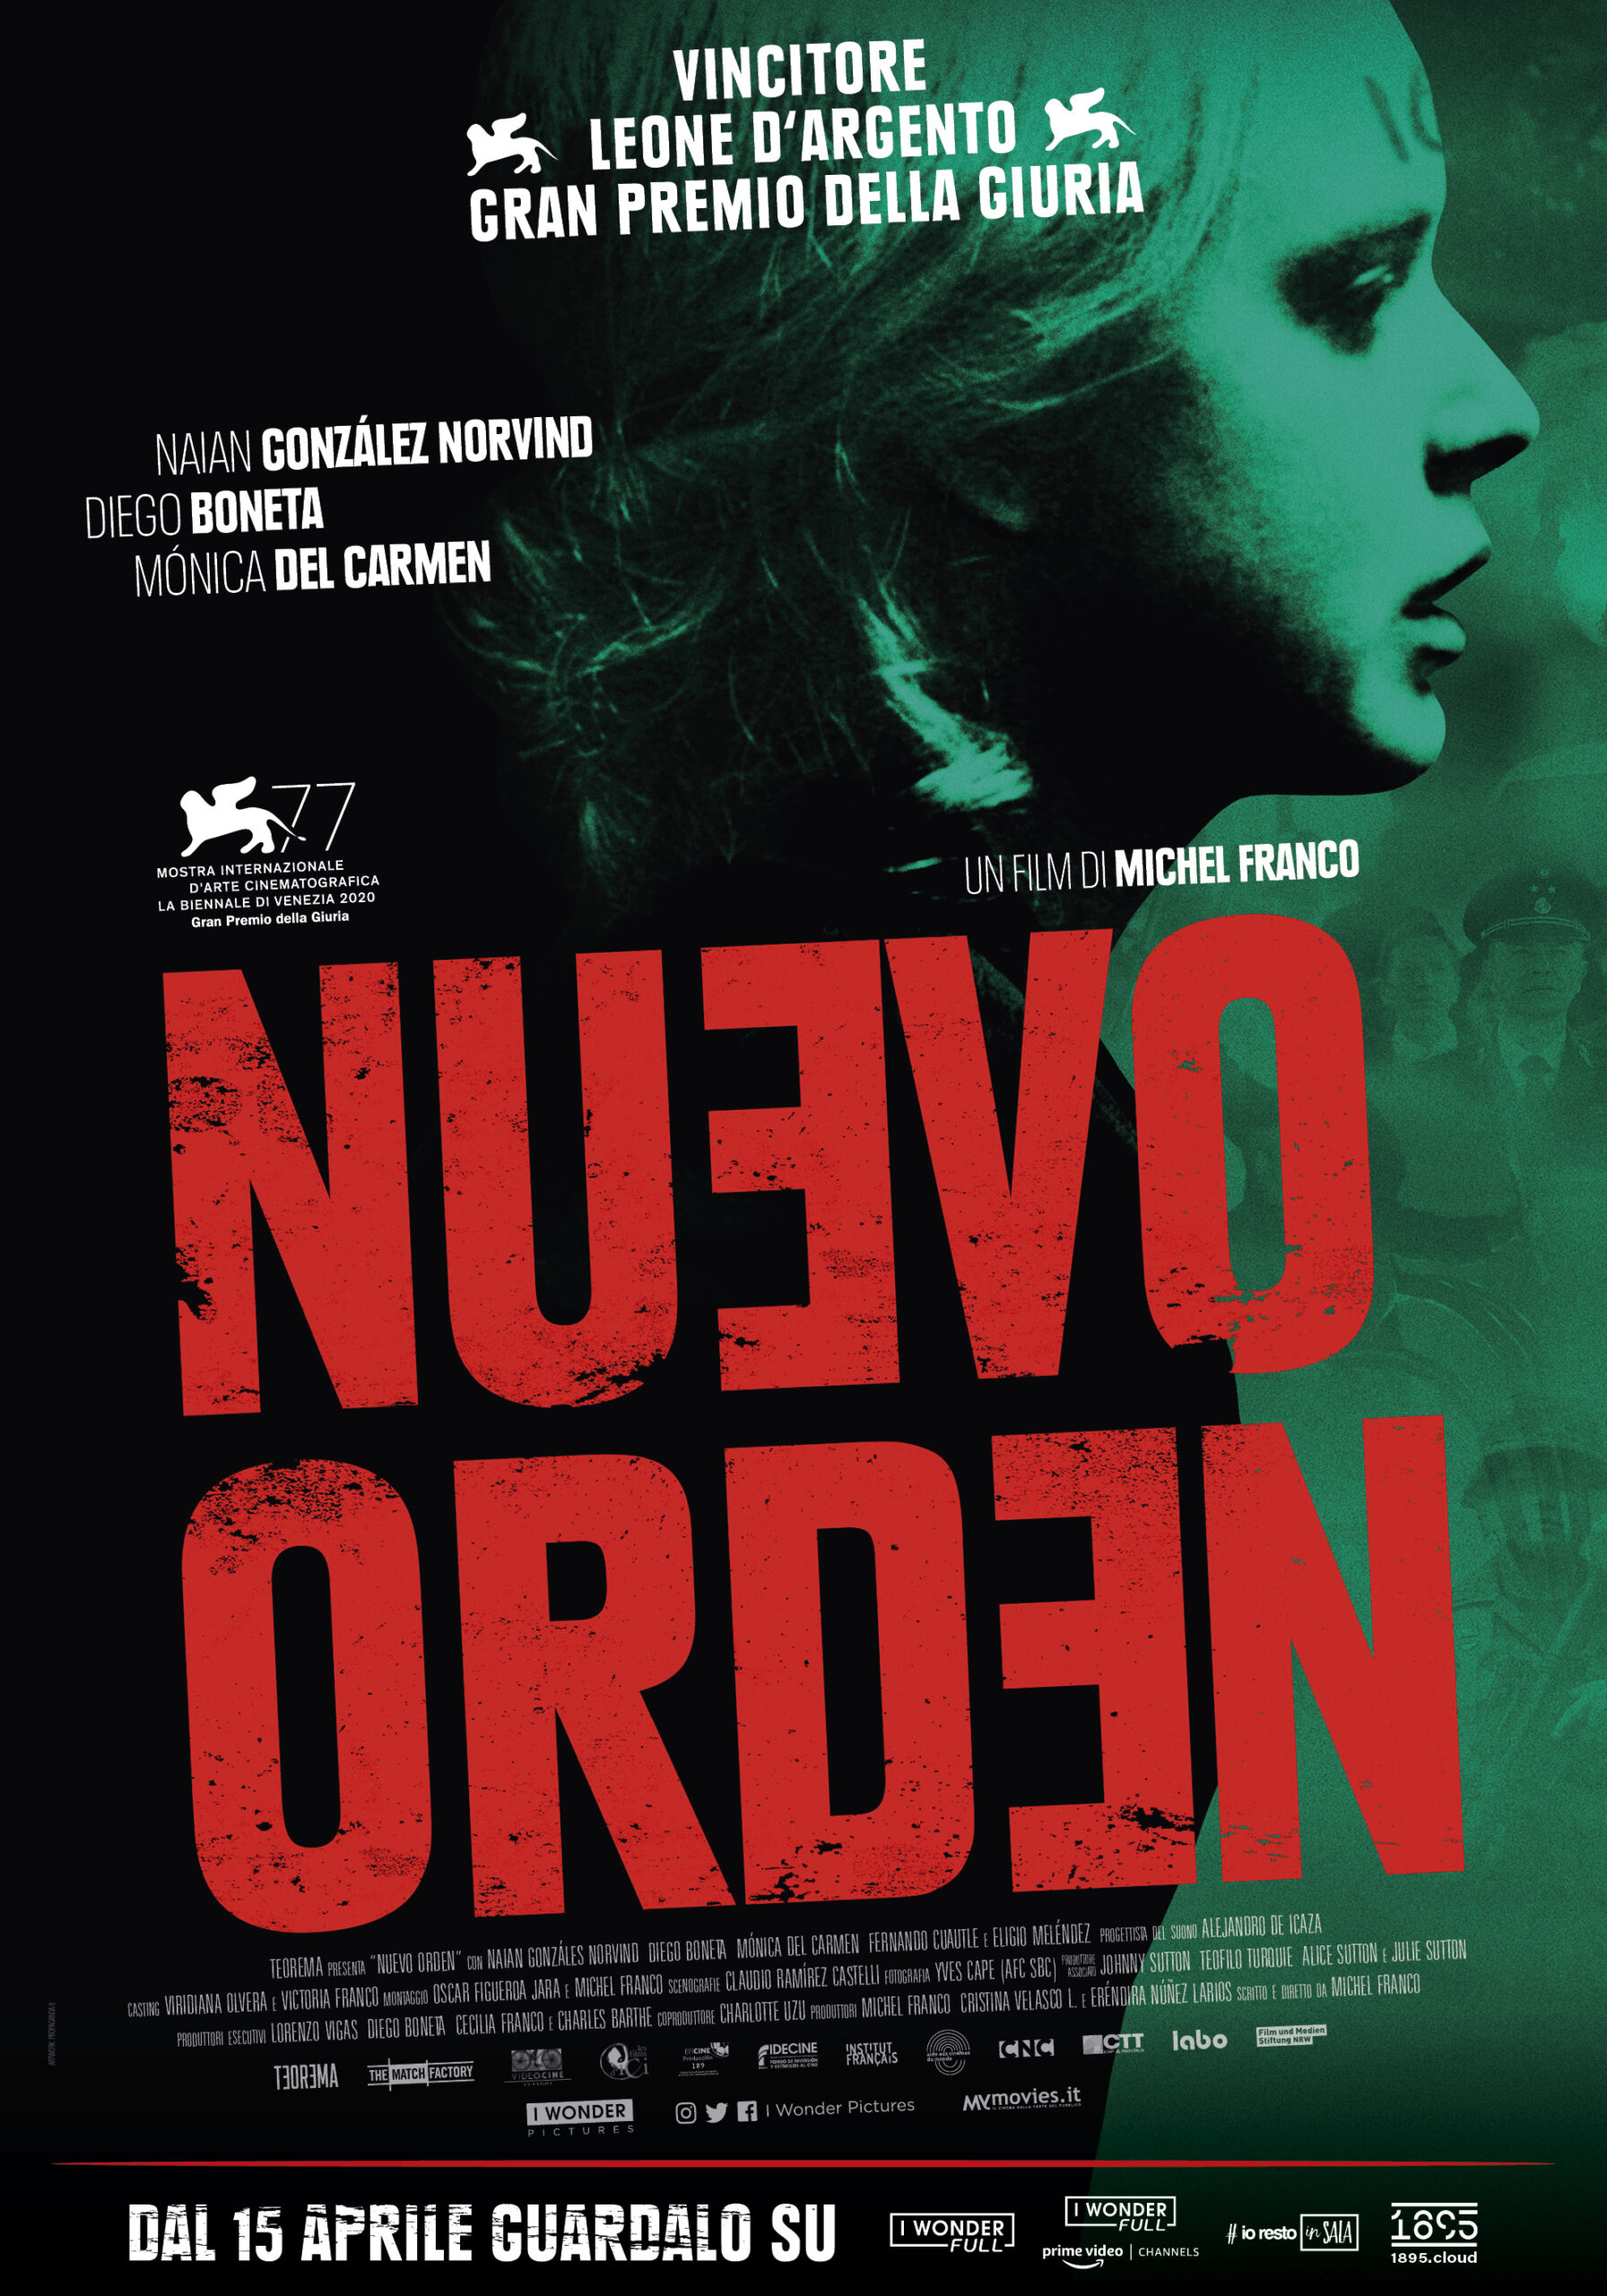 On demand il film Nuevo Orden, Leone d'Argento di Venezia 77